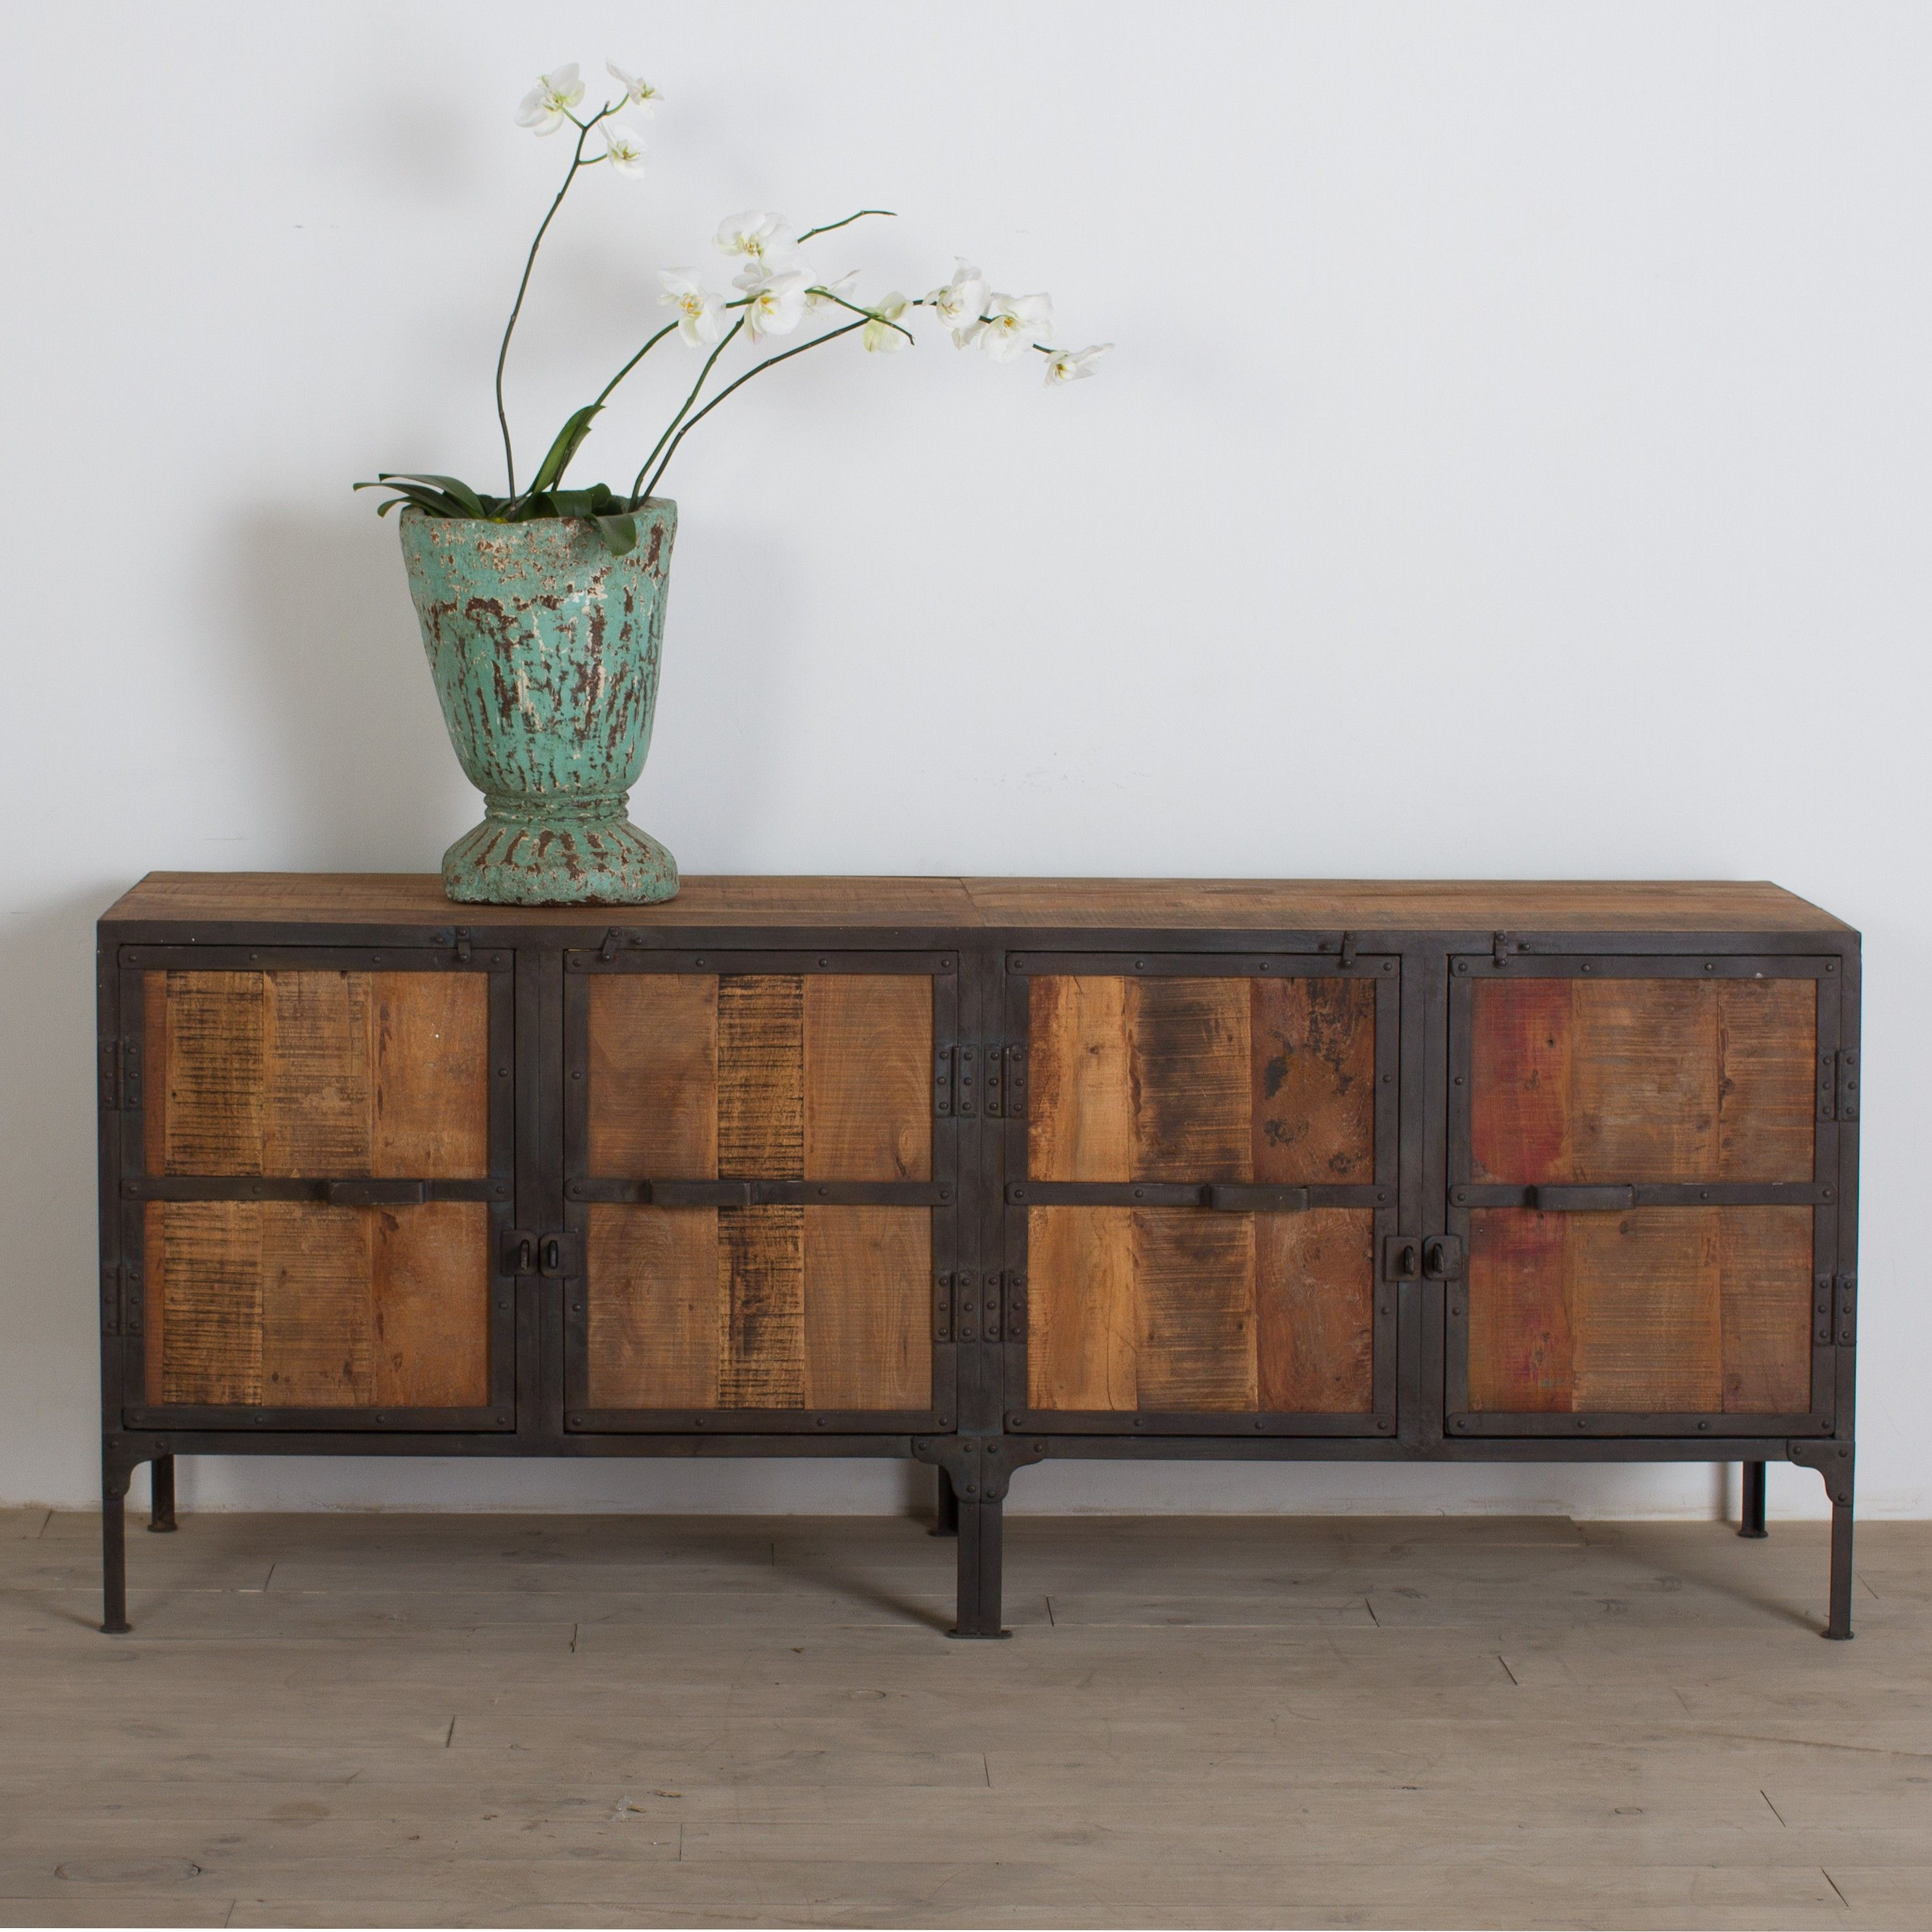 wood and iron furniture. the u0027hyderbadu0027 buffet handcrafted from reclaimed wood and iron furniture g